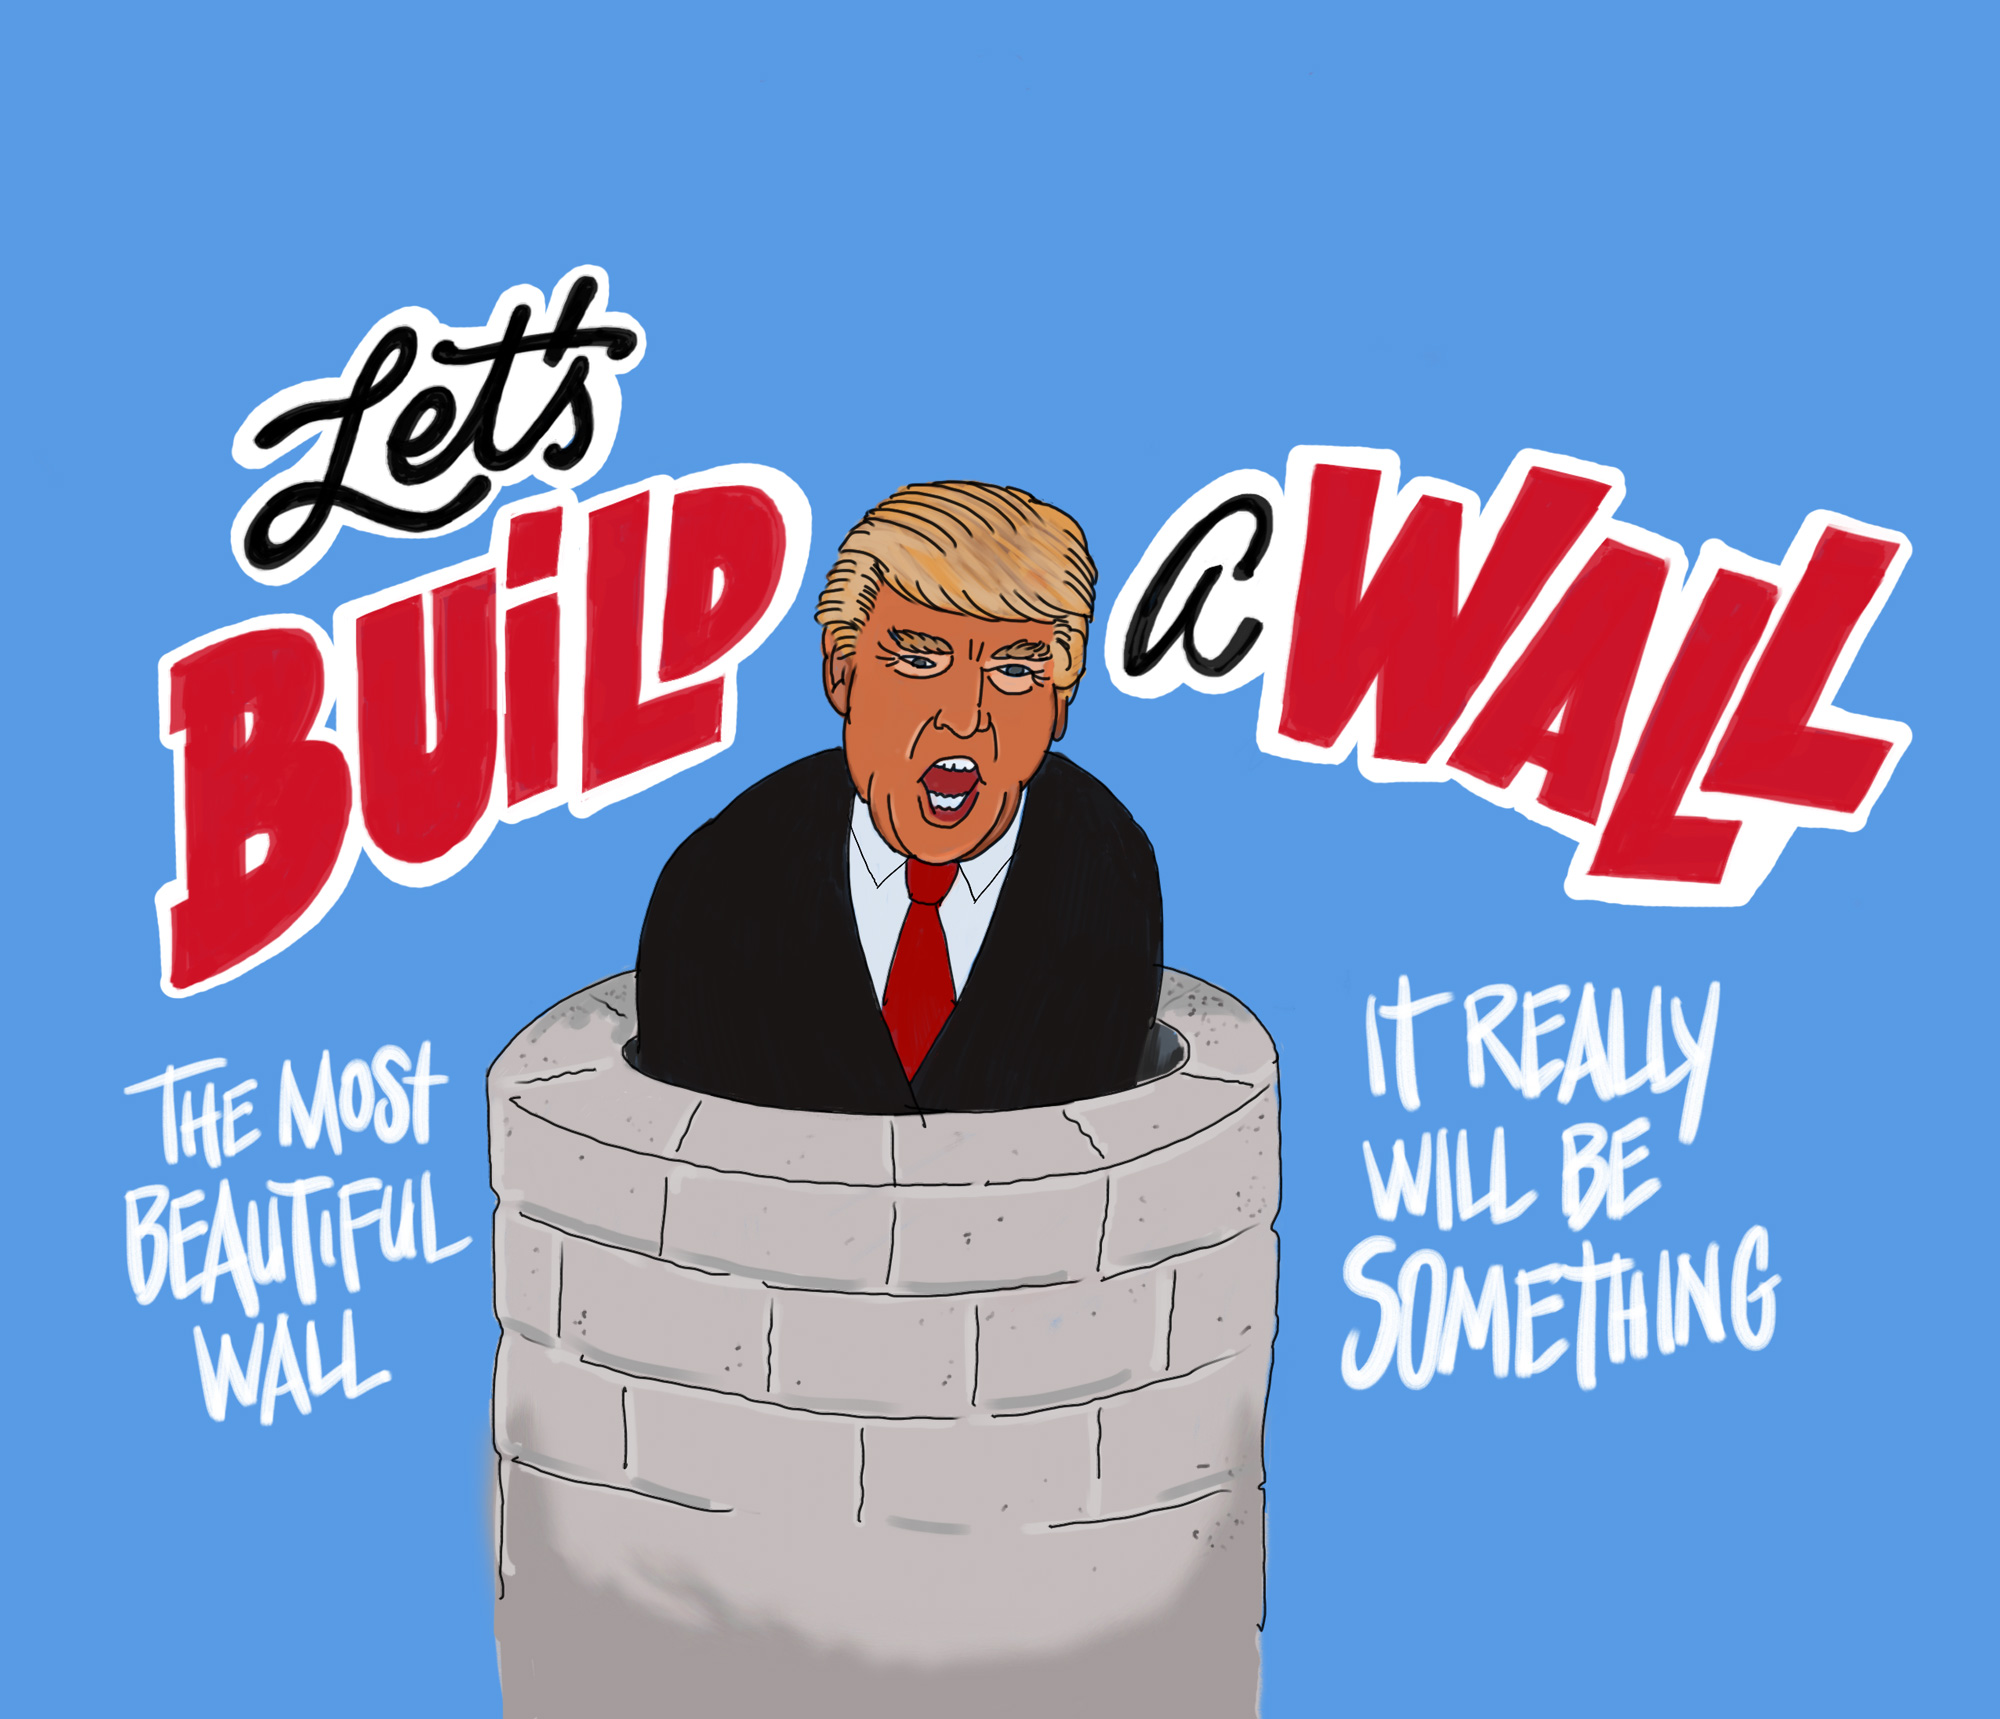 donald trump lets build a wall